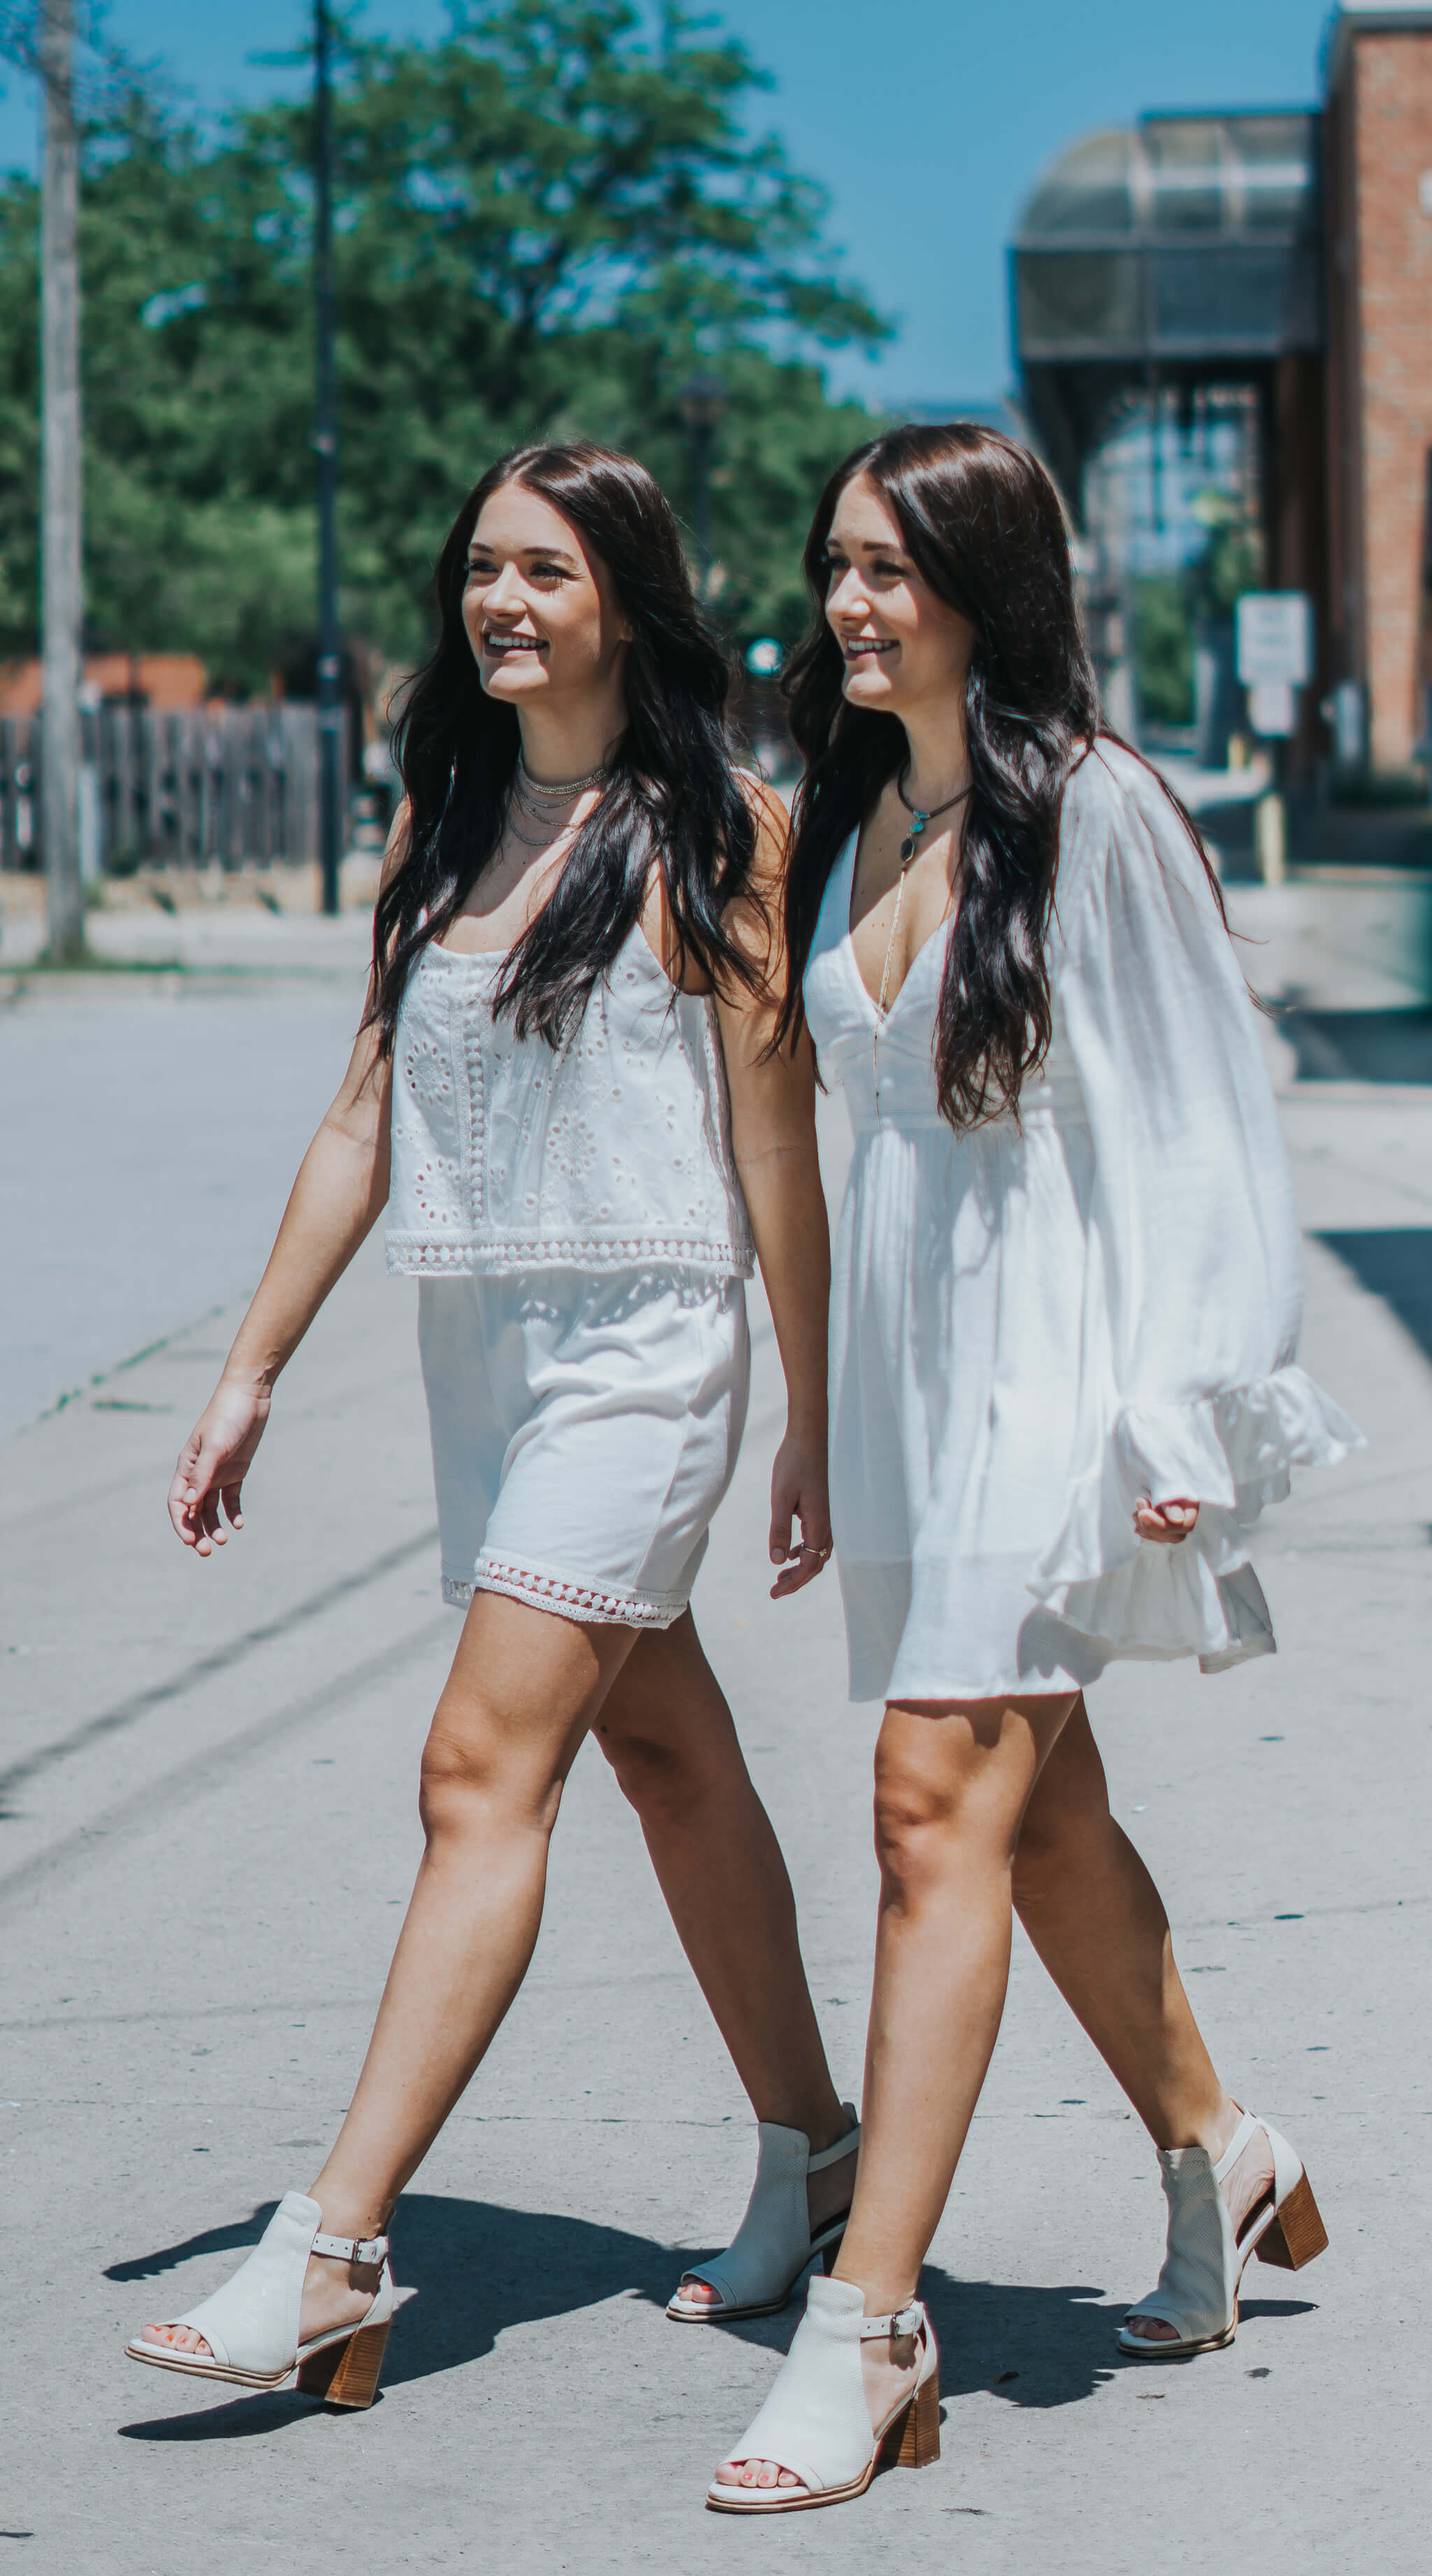 Alexia Ann Photography | Twinspiration